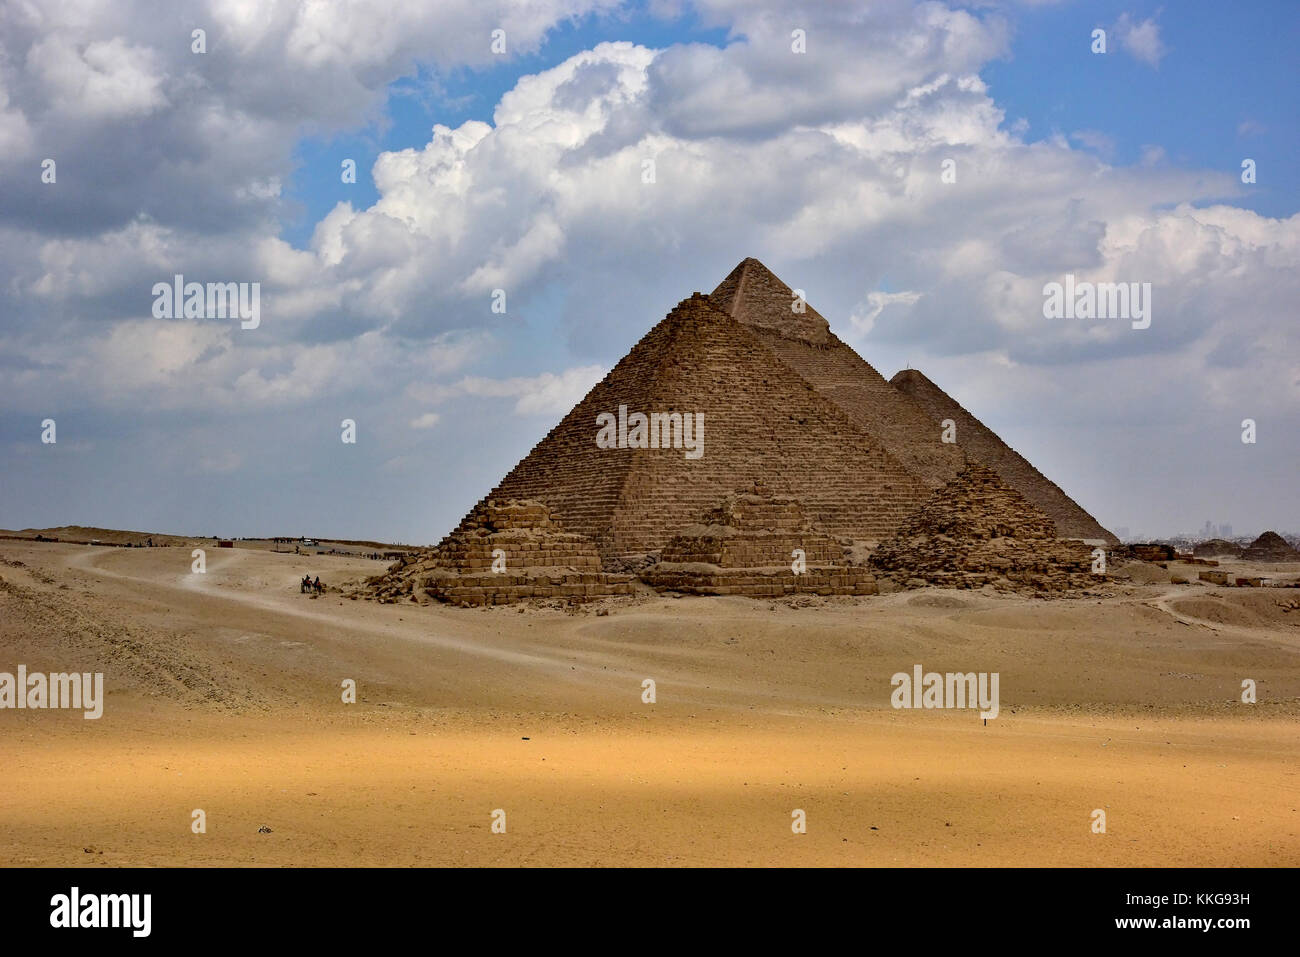 The six pyramids of the Giza Pyramid Complex, Giza Plateau, Egypt. - Stock Image